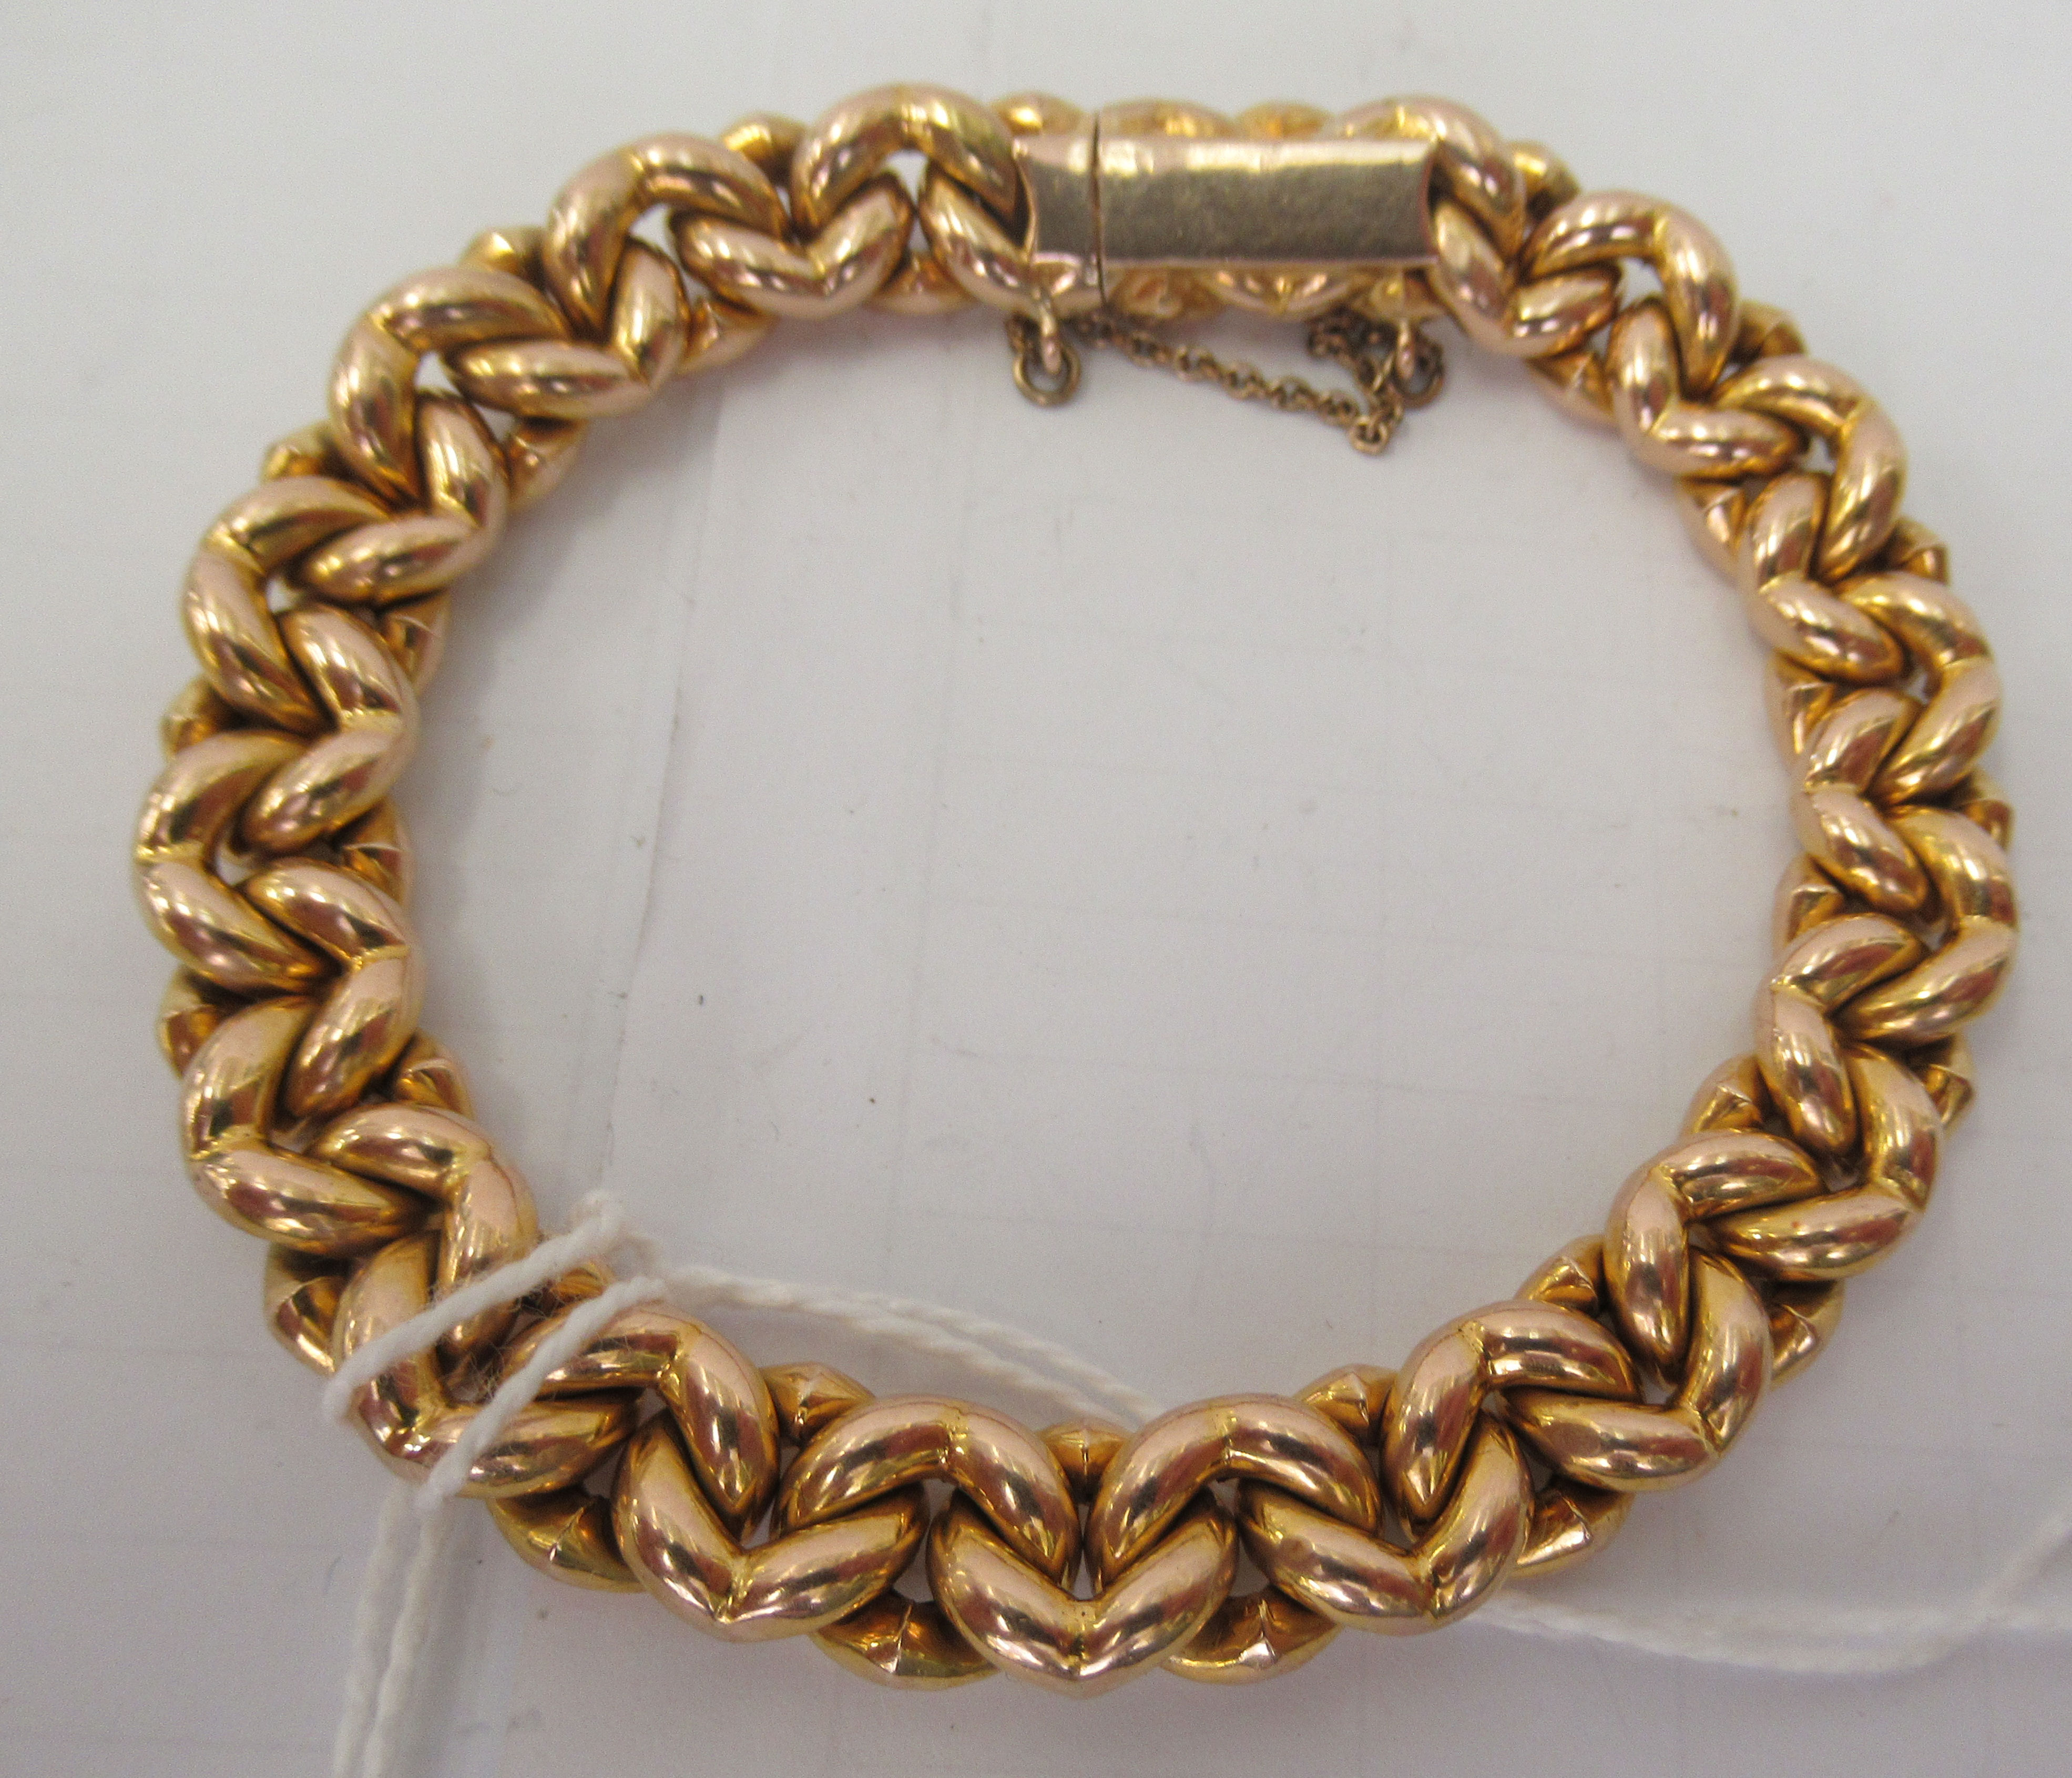 A 15ct gold fancy link bracelet, on a bayonet clasp and safety chain